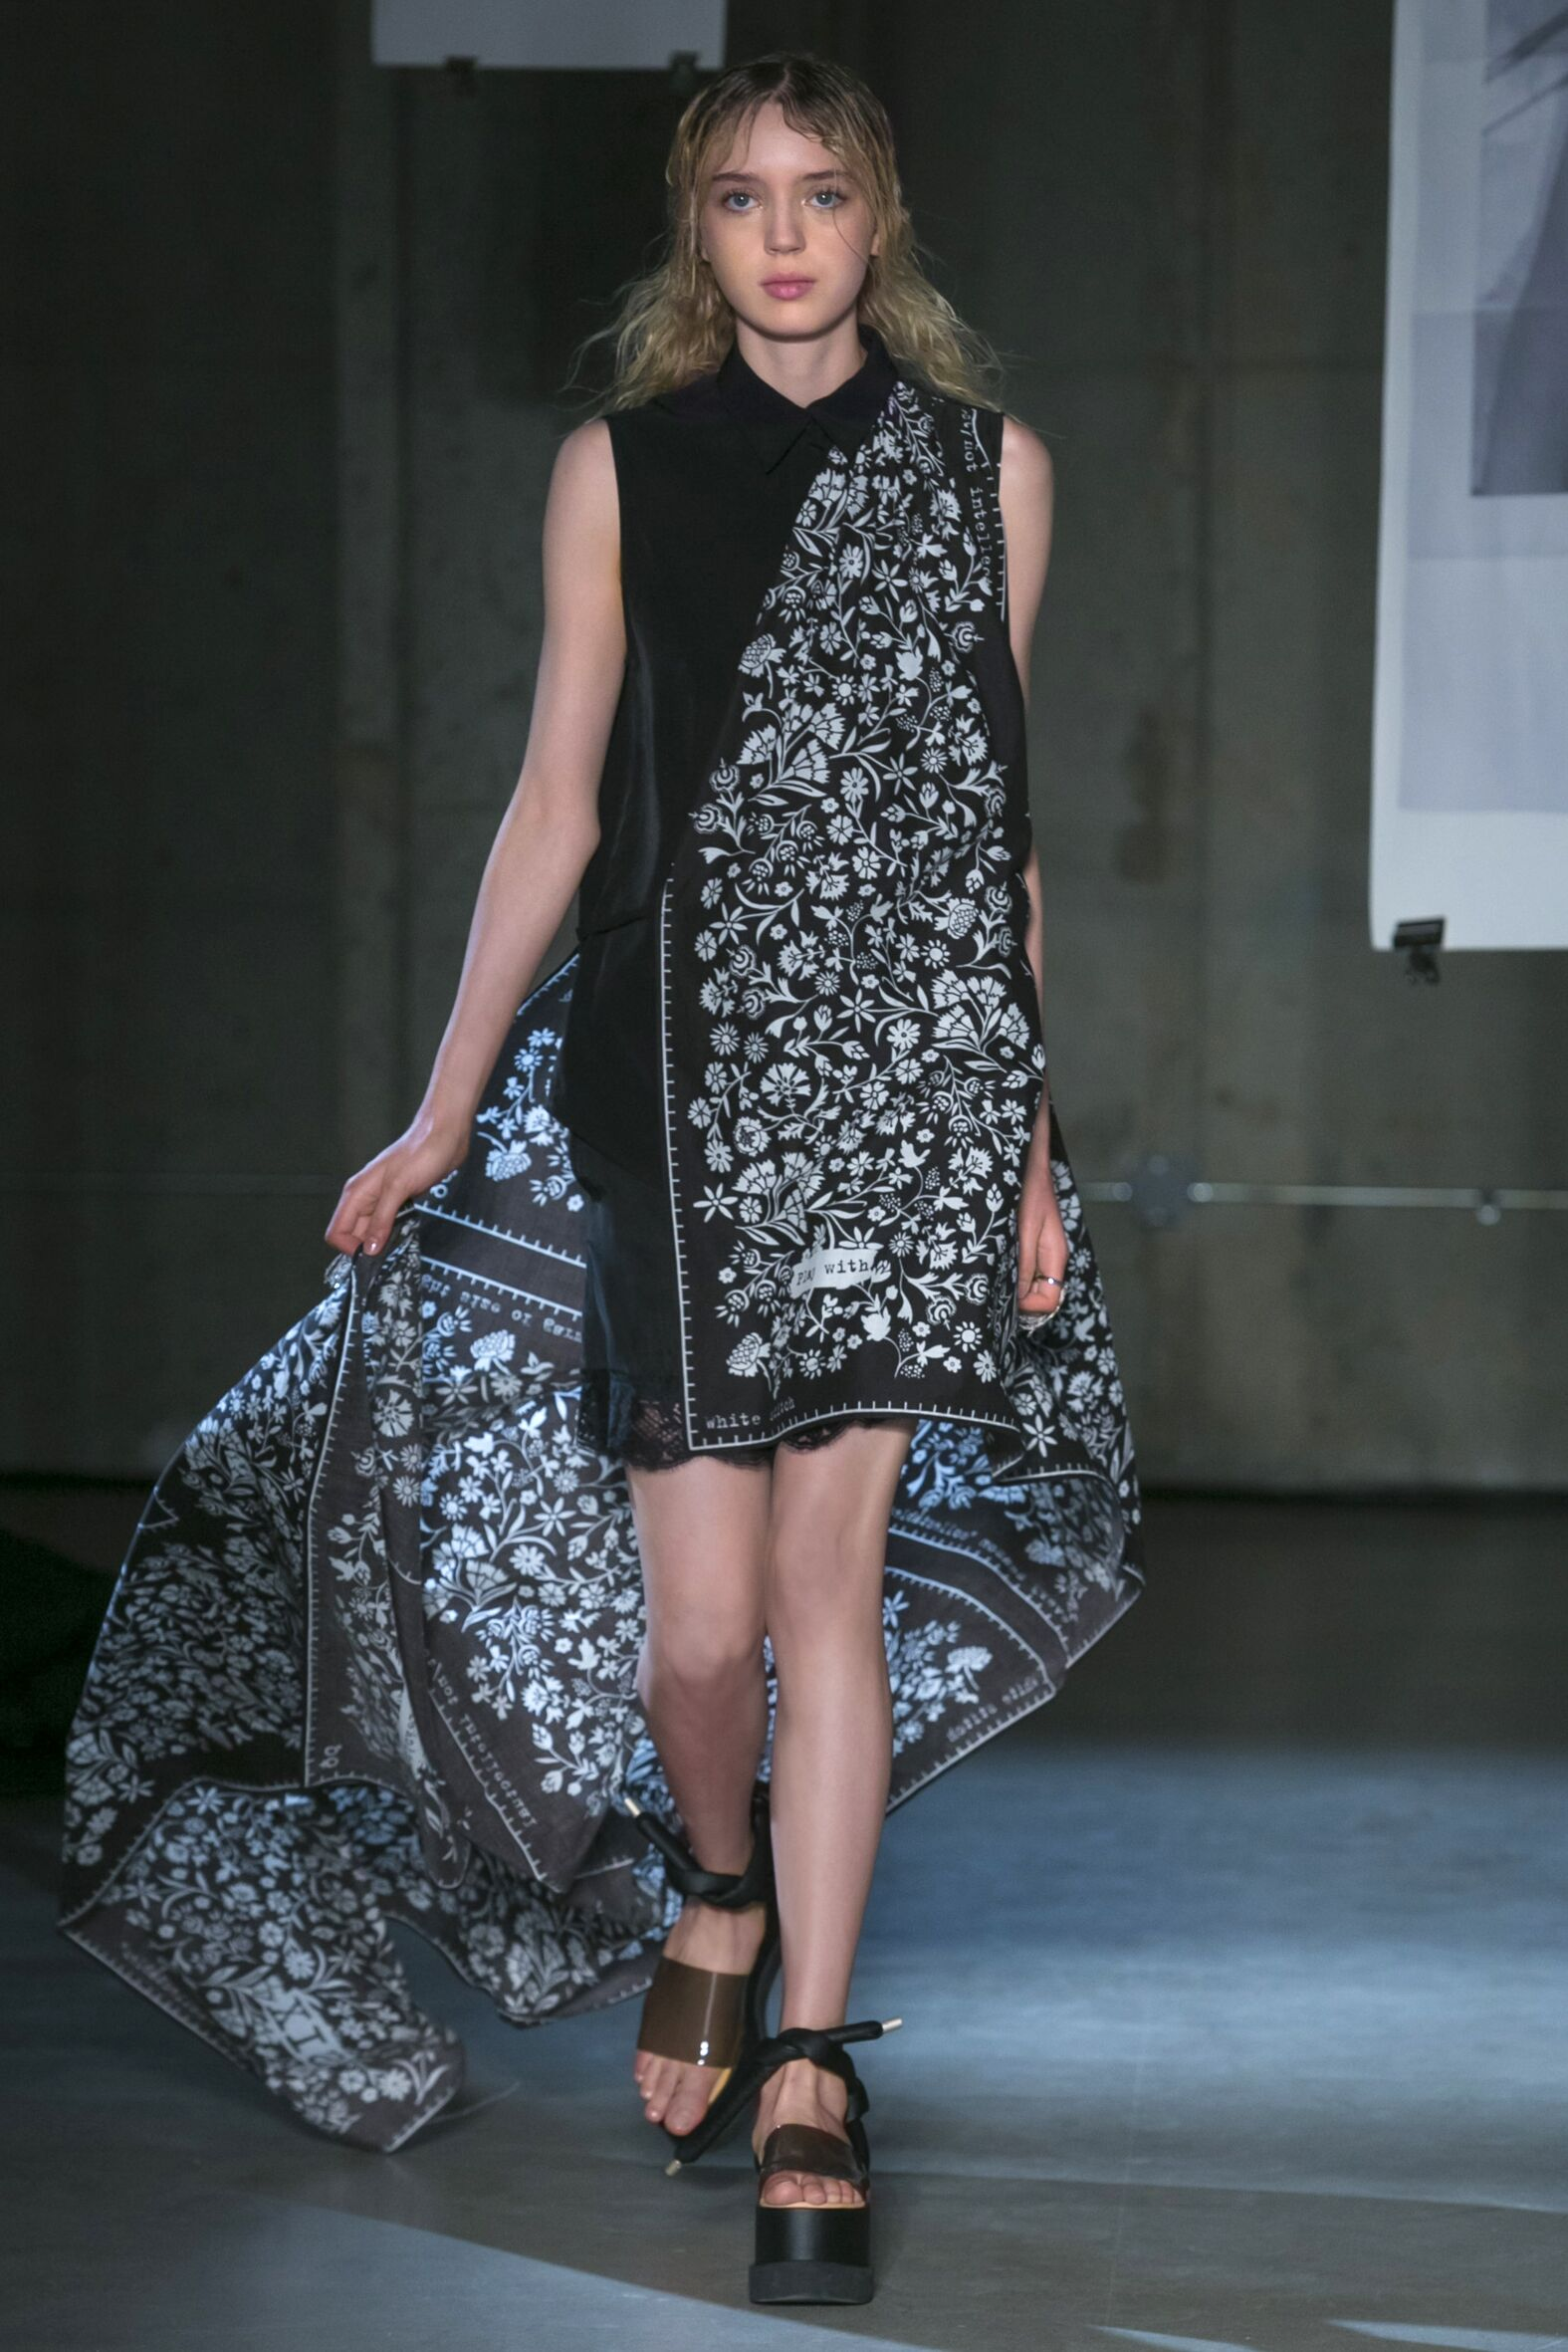 Spring Fashion Trends 2015 MM6 Maison Martin Margiela